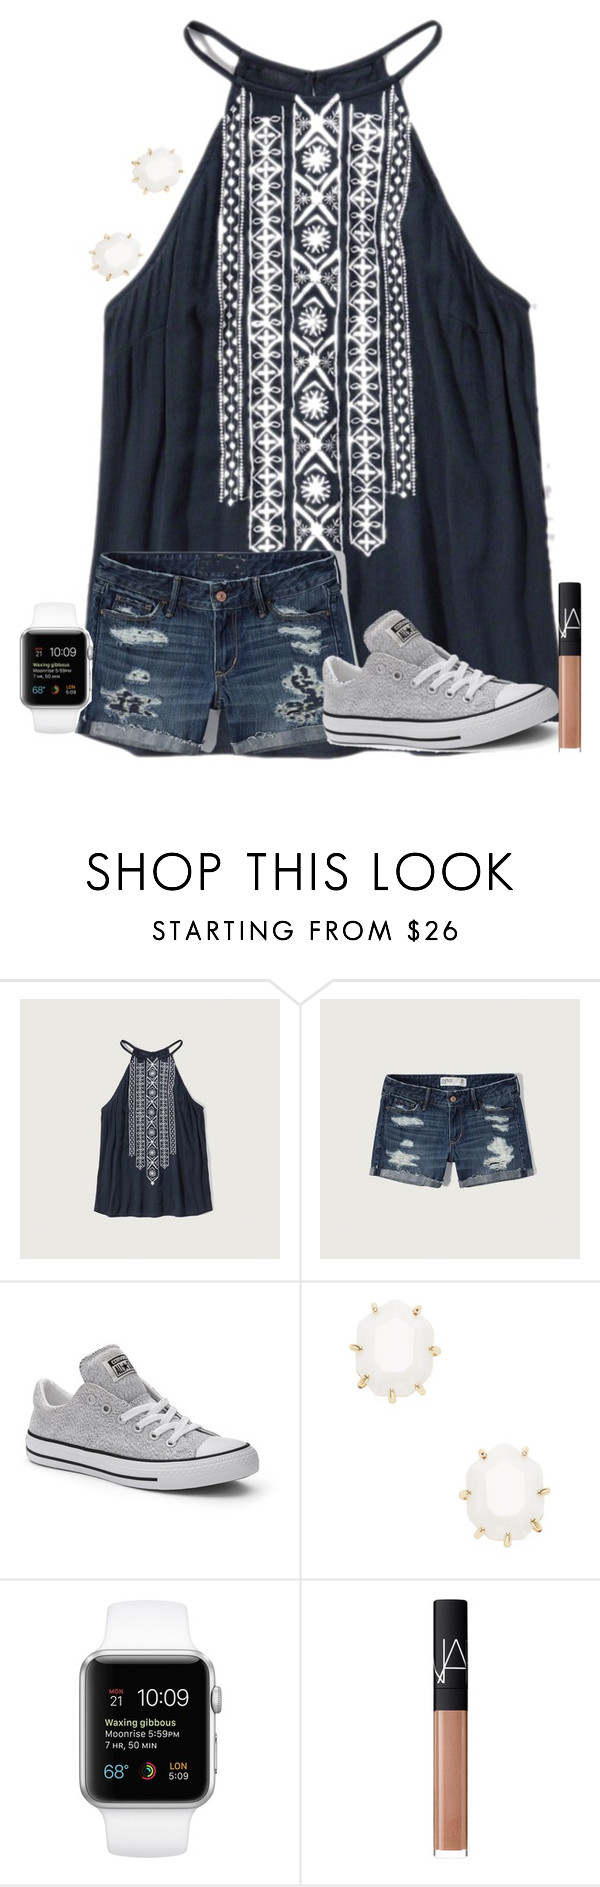 """""""heyyyy"""" by texasgirlfashion ❤ liked on Polyvore featuring Abercrombie & Fitch, Converse, Kendra Scott and NARS Cosmetics"""